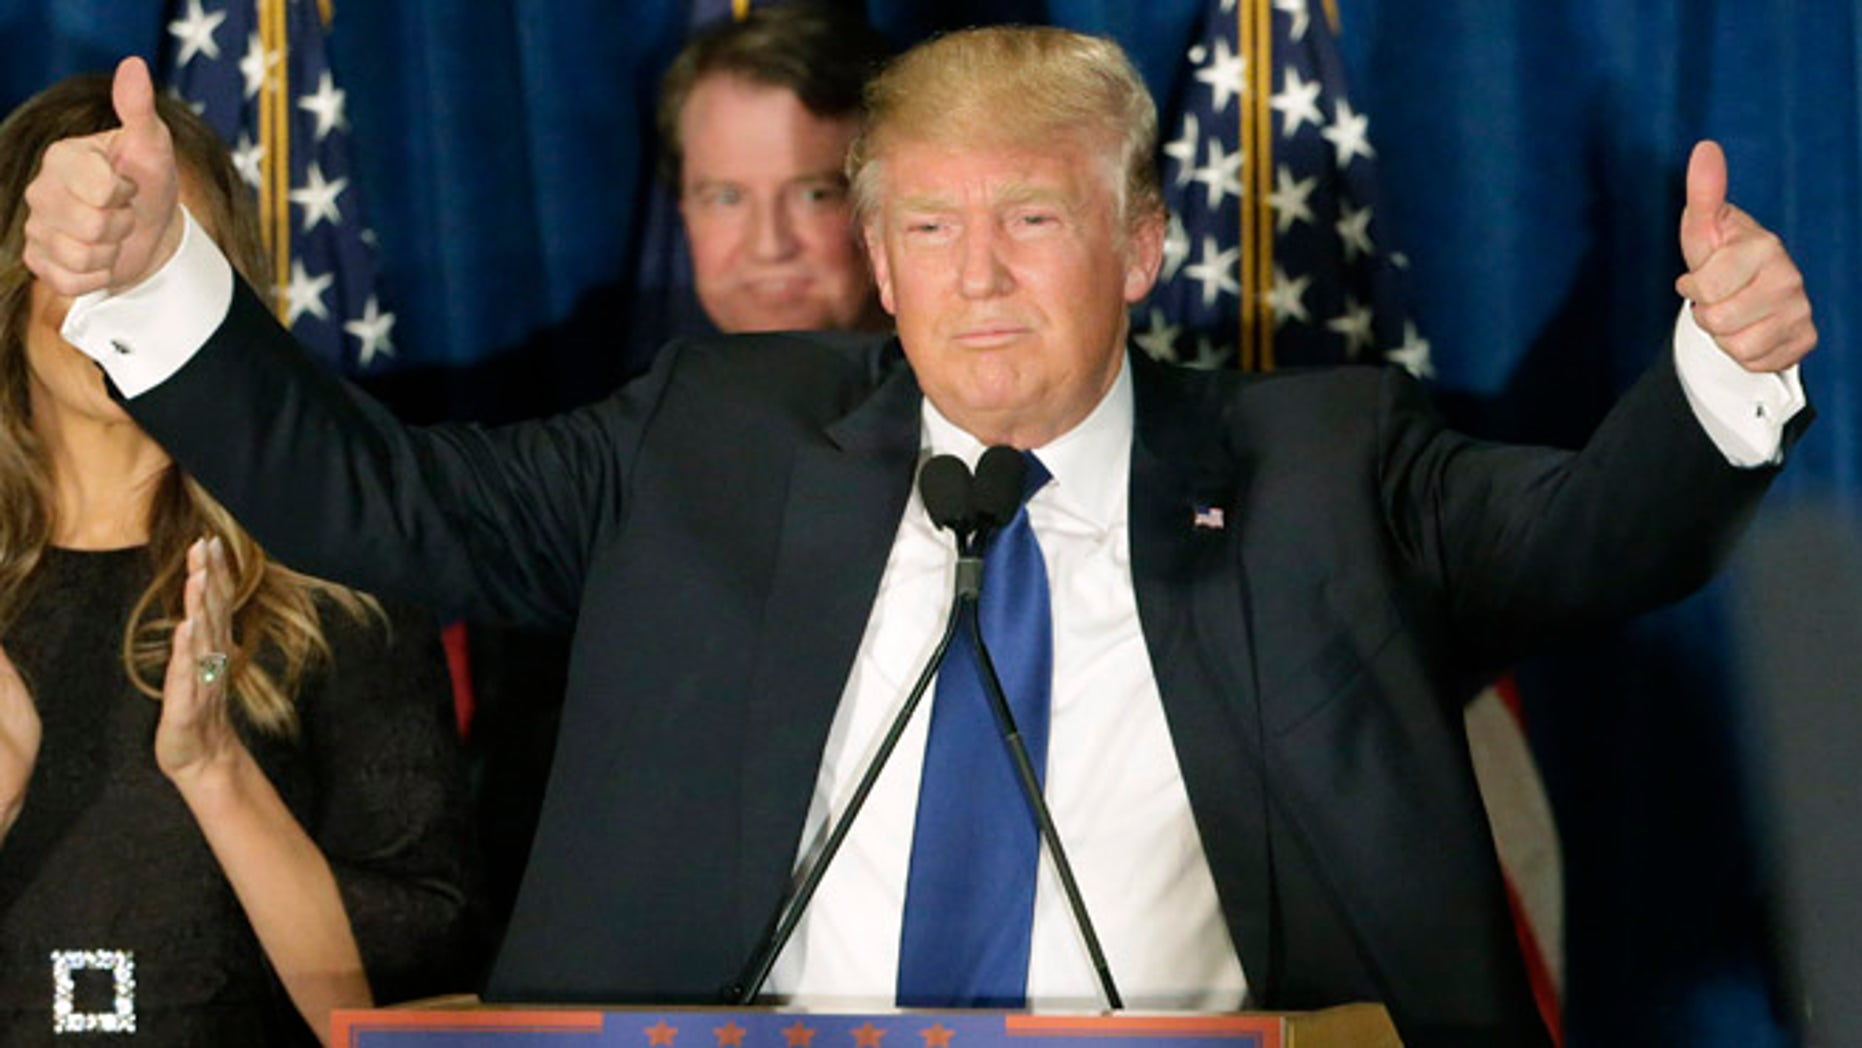 Donald Trump gives thumbs up to supporters during a primary night rally, Tuesday, Feb. 9, 2016, in Manchester, N.H.